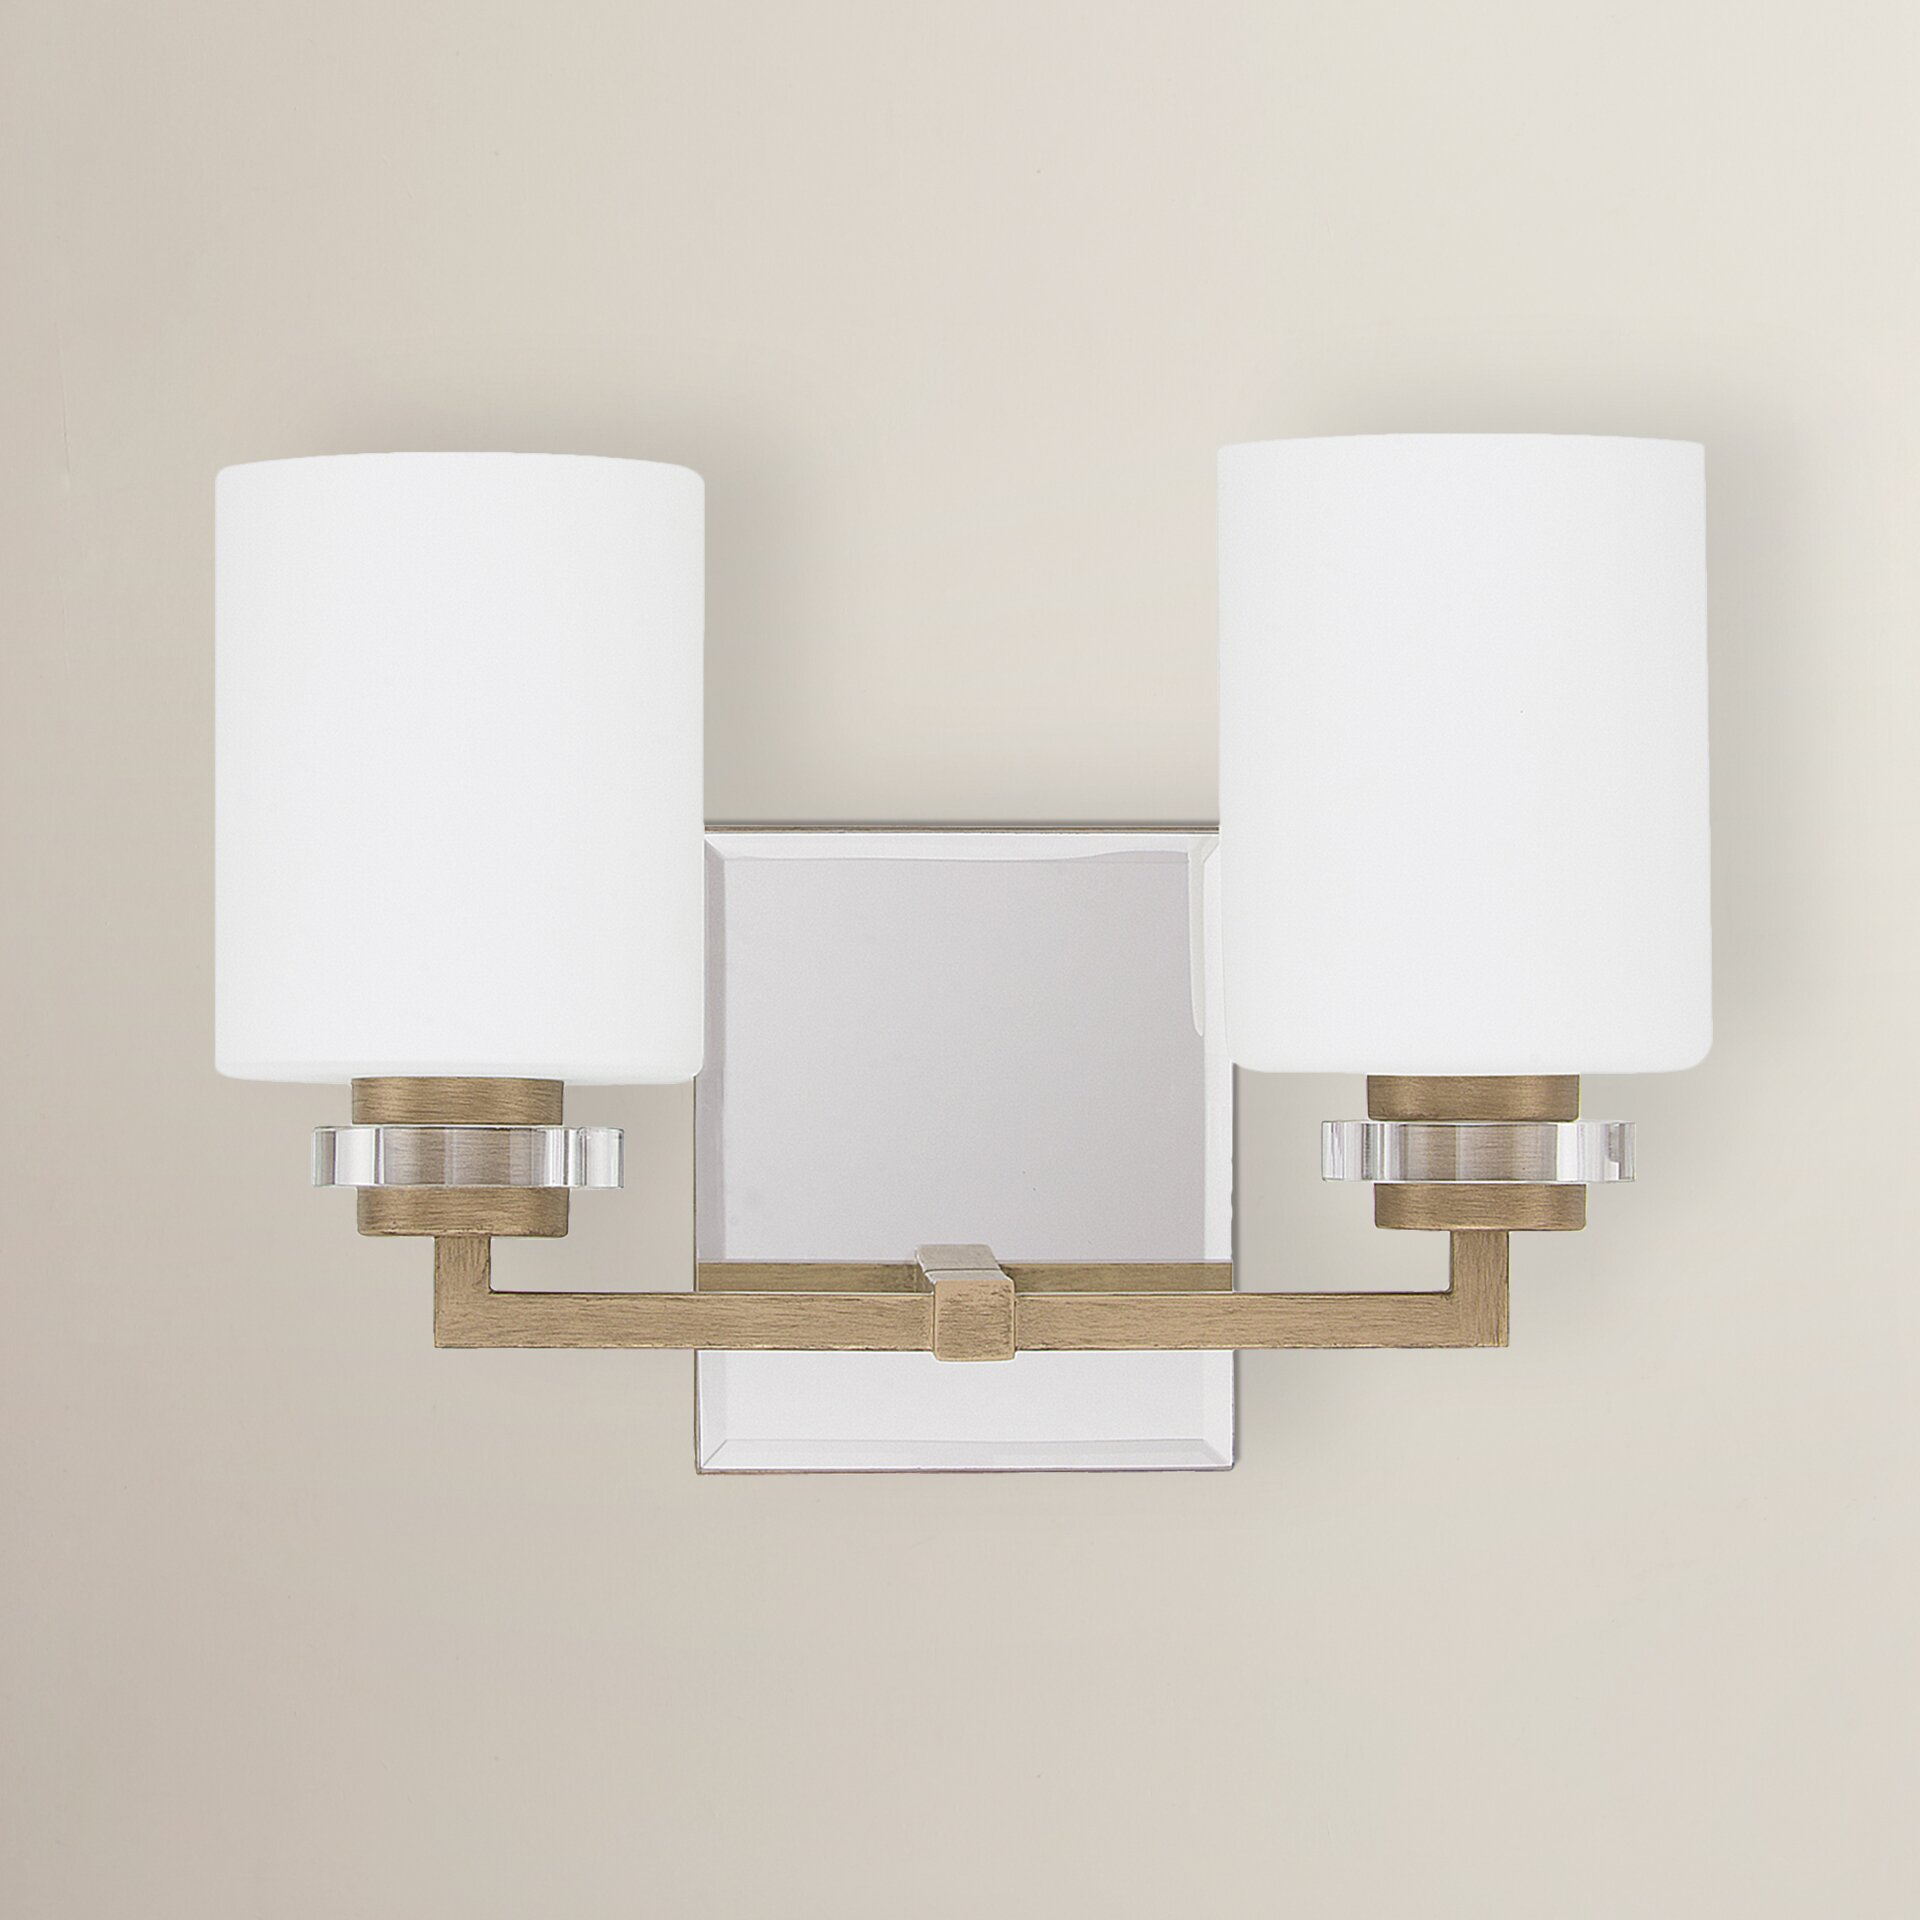 Wayfair Bathroom Lighting 28 Images Kichler O Hara 2 Light Bath Vanity Light Reviews Wayfair